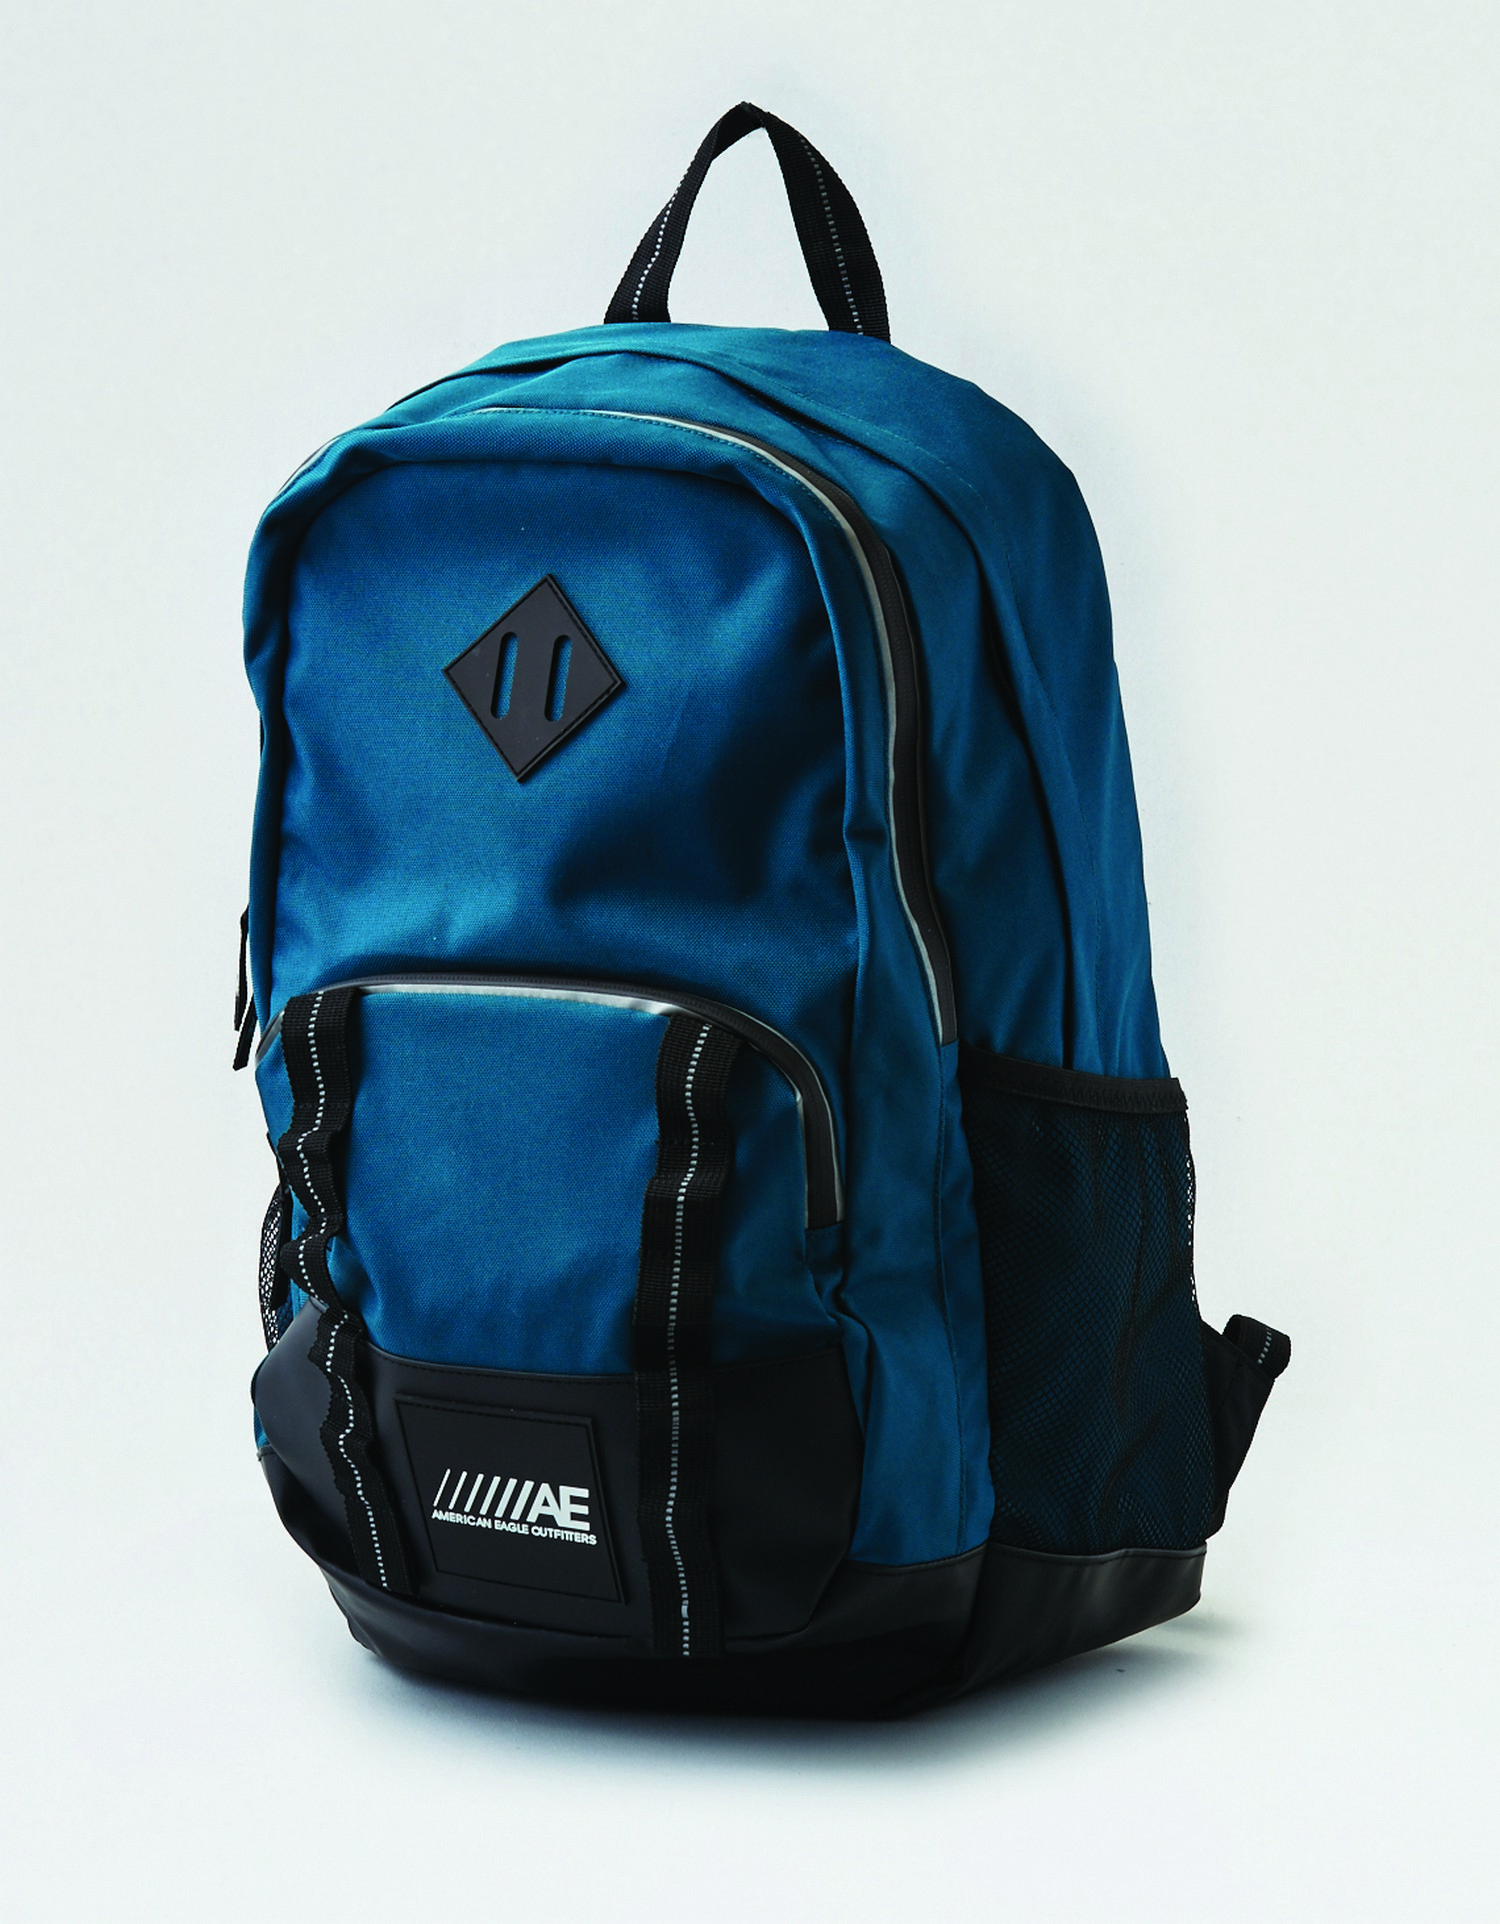 AE - M - Accessories - SPORT BAG - Teal - triple pocket - reflective taping around zipper - black rubber bottom - ////AE AL Tracked